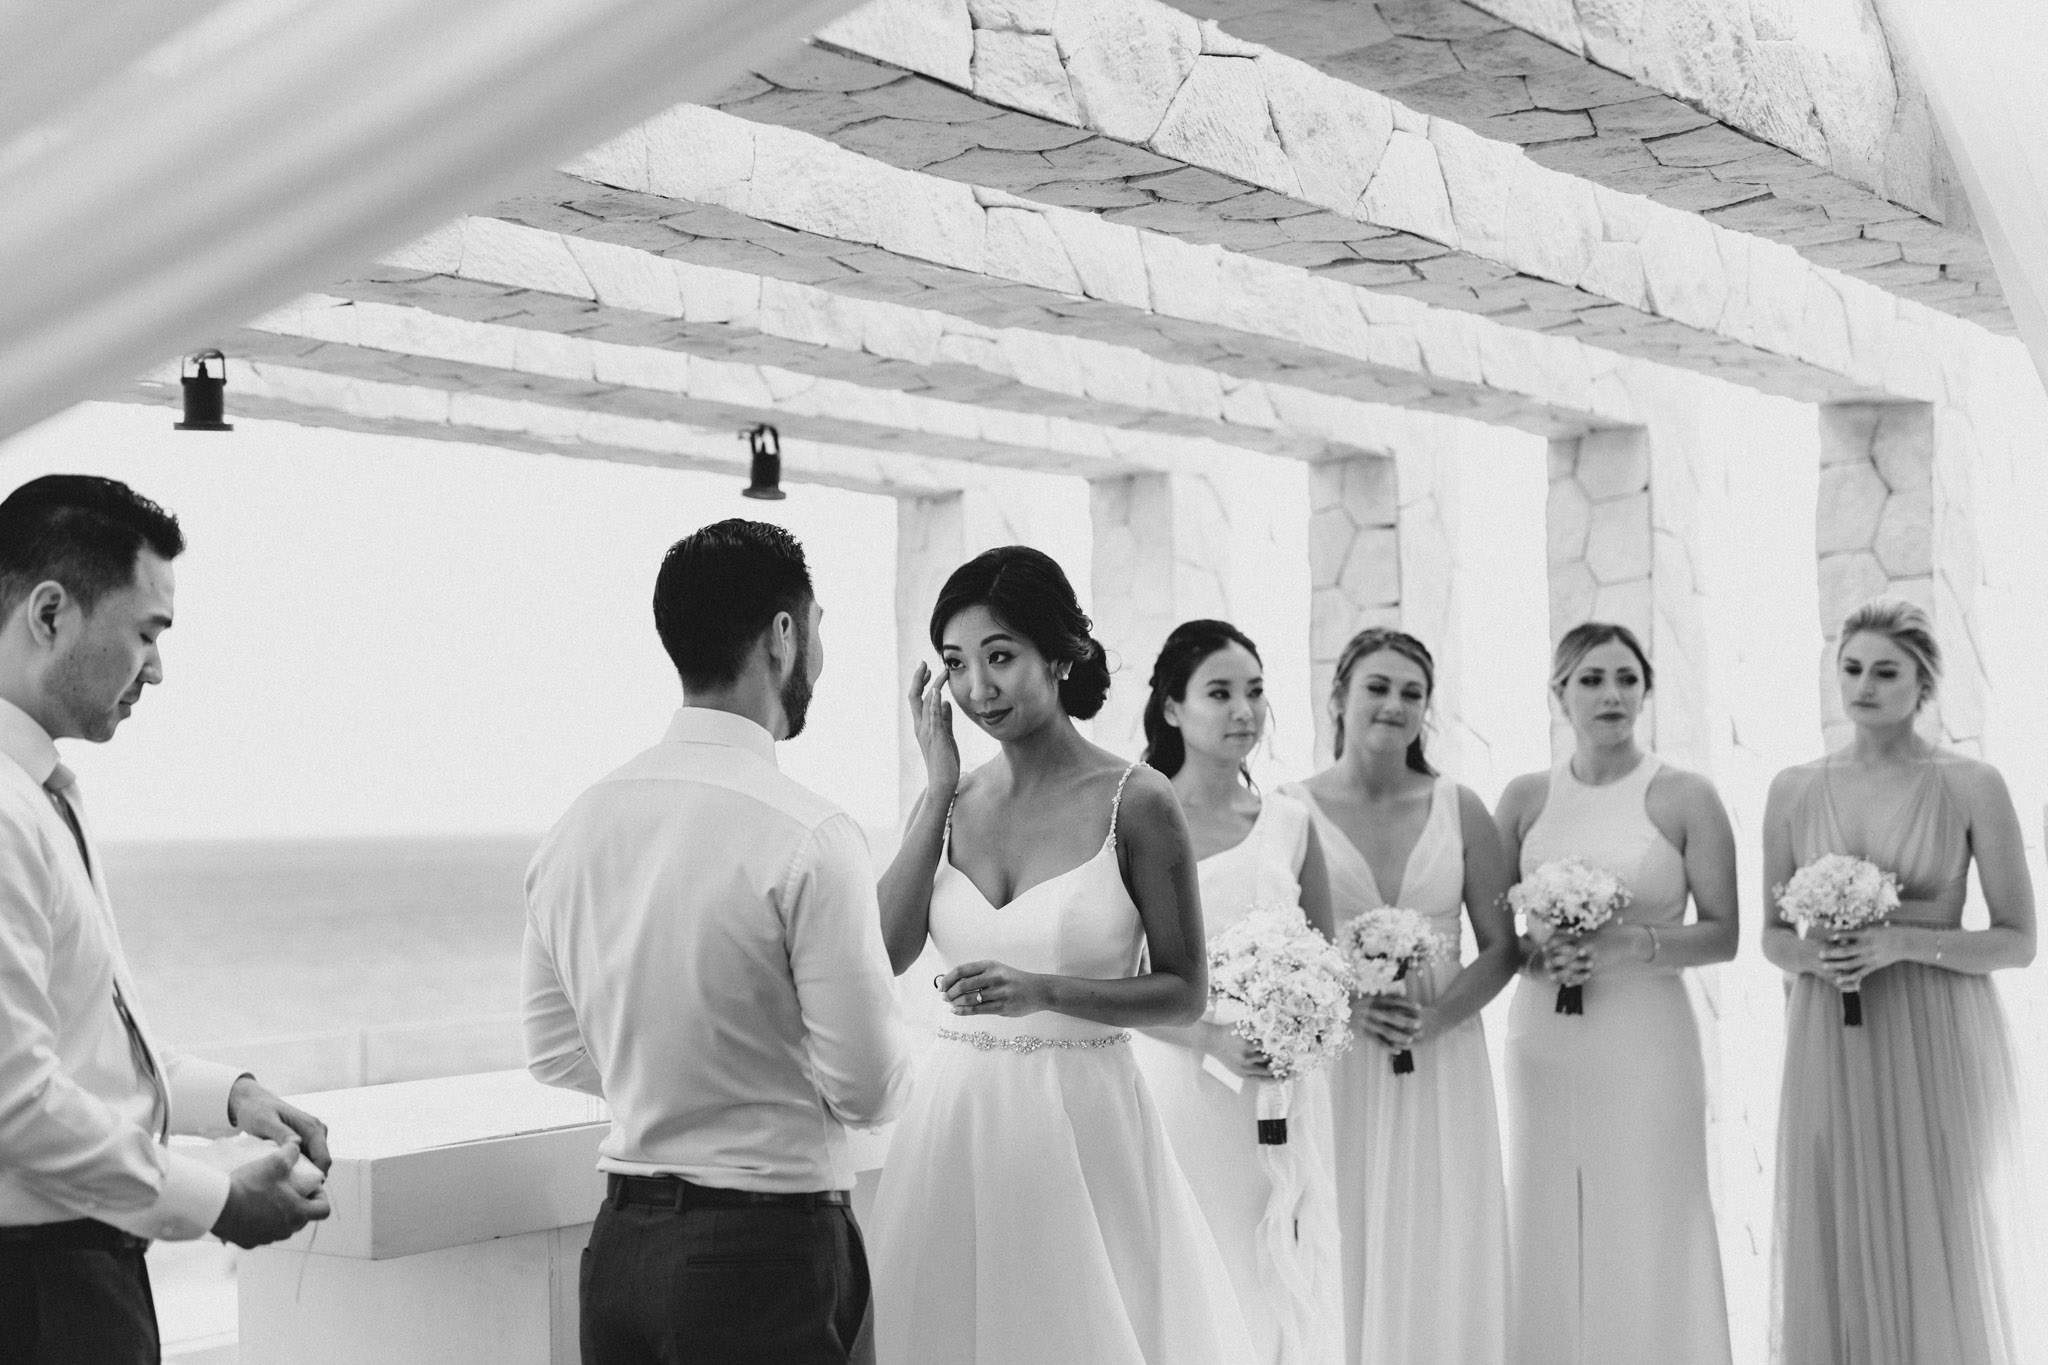 Cancun Mexico Wedding - tears of joy at the alter